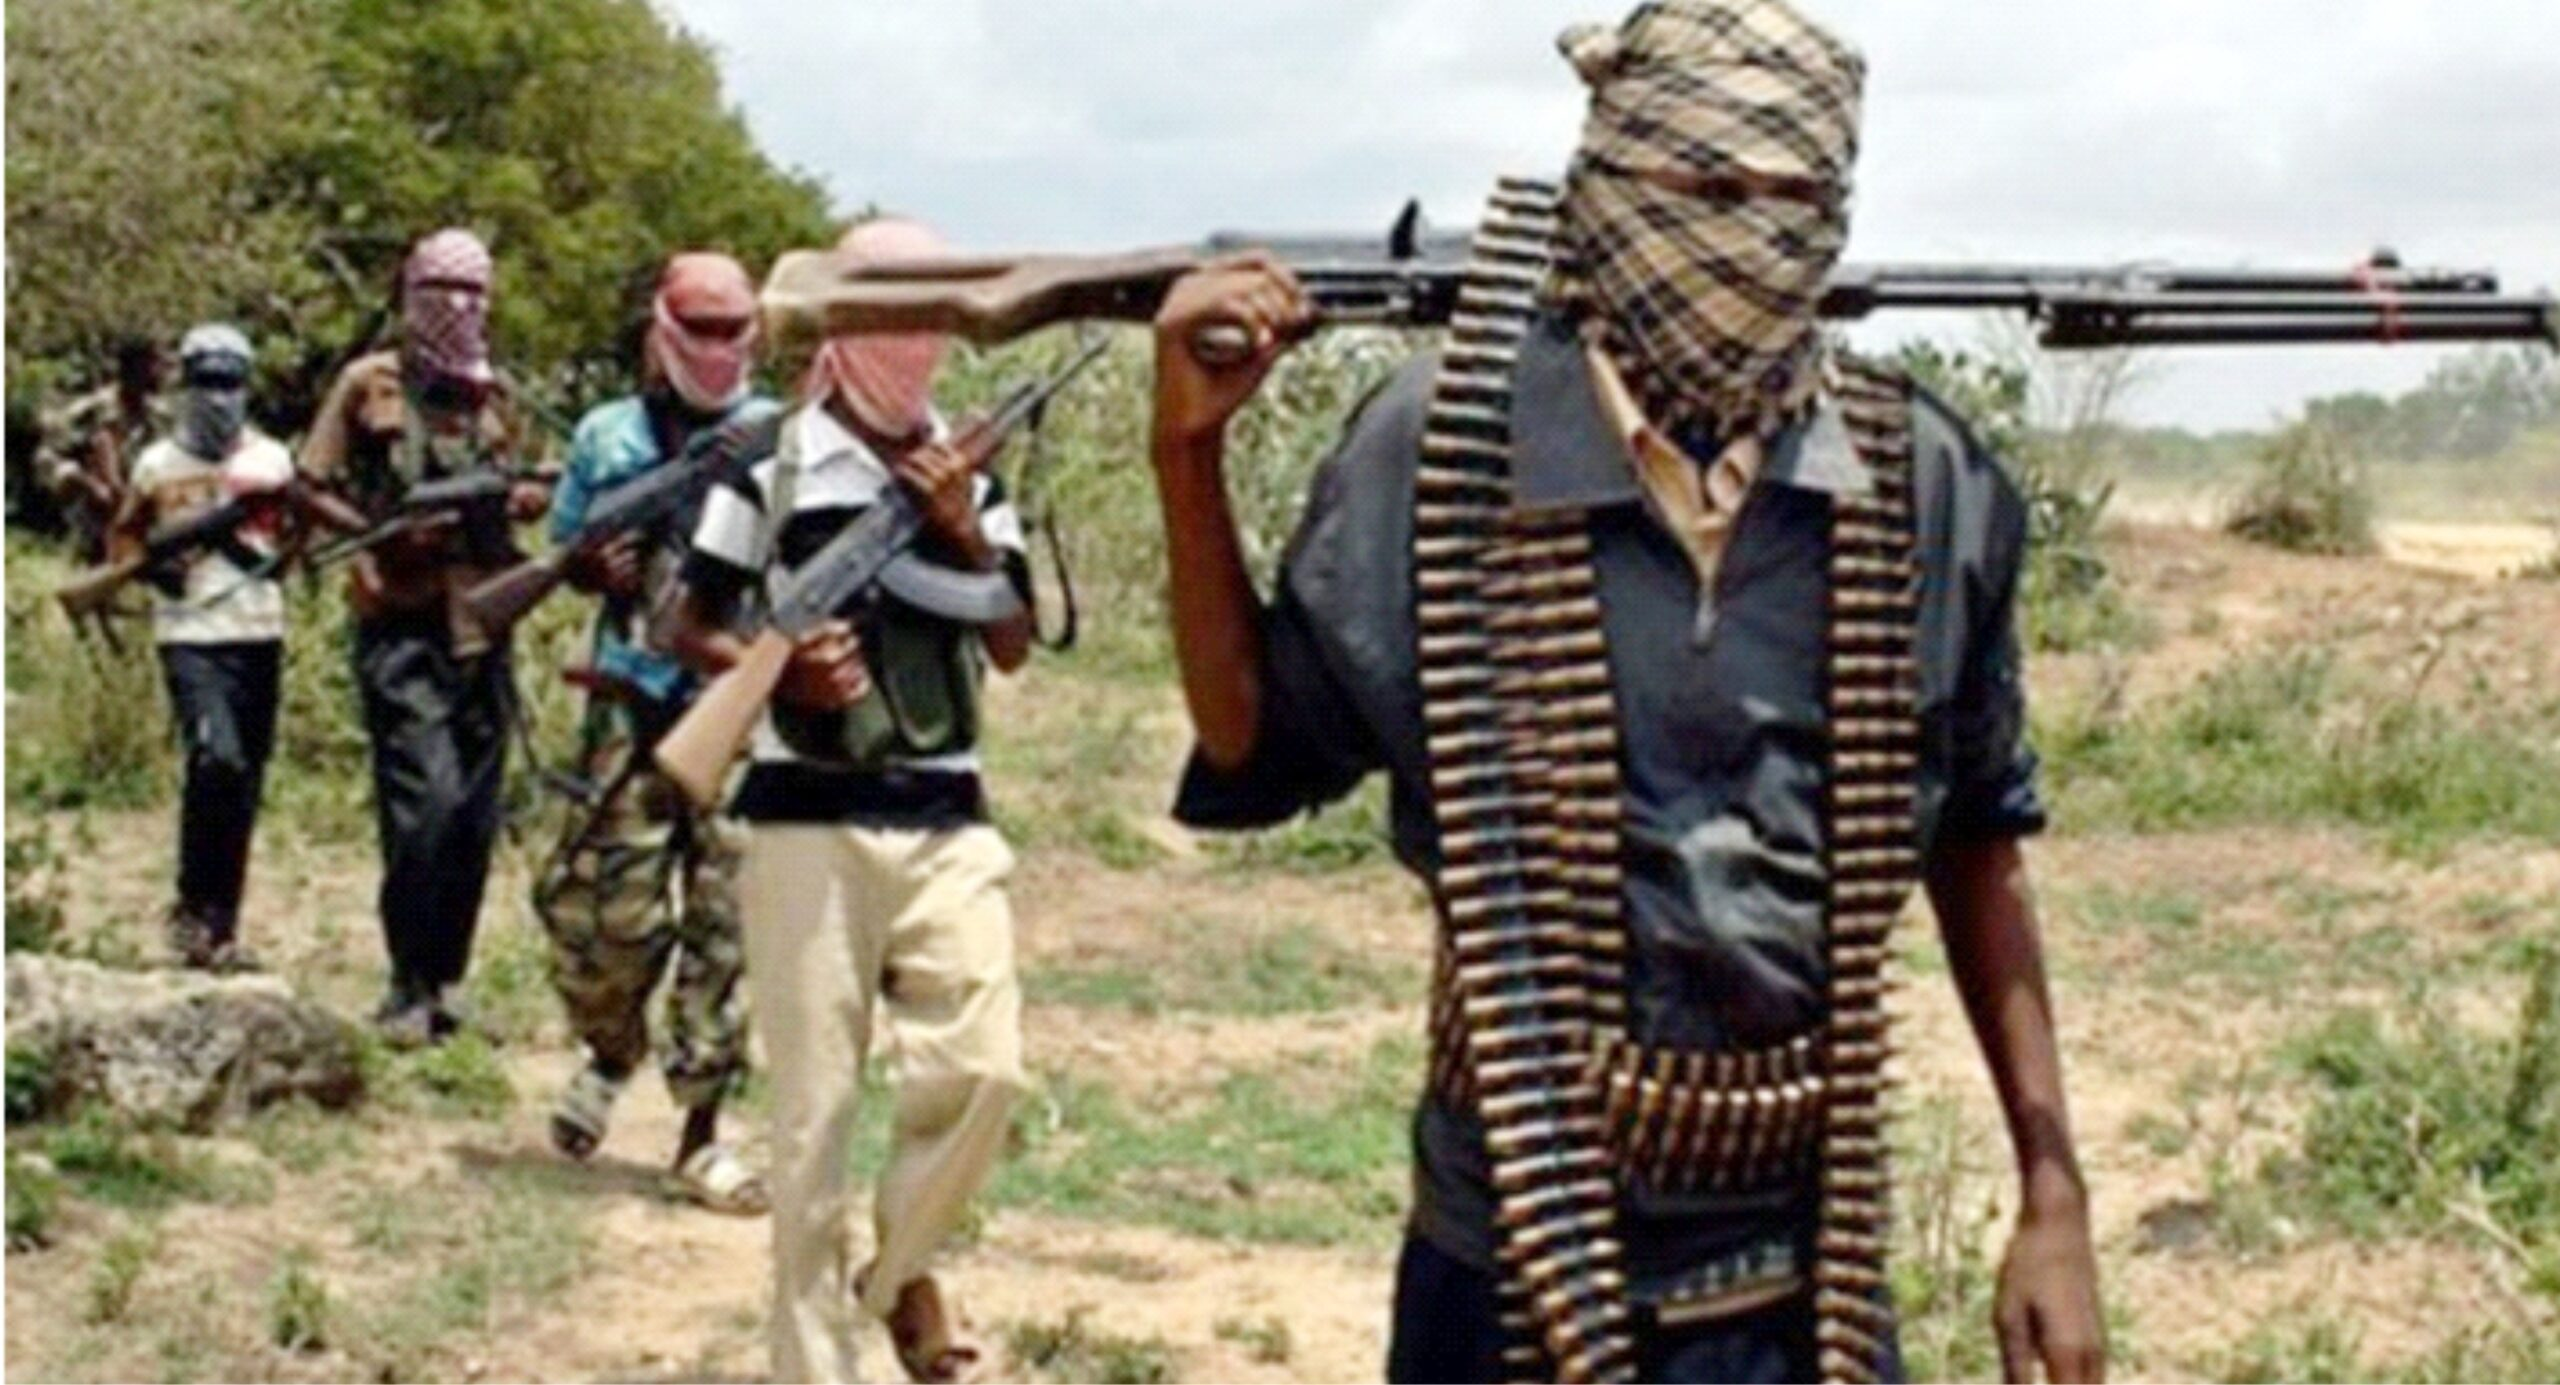 Booming kidnapping and Nigerian law